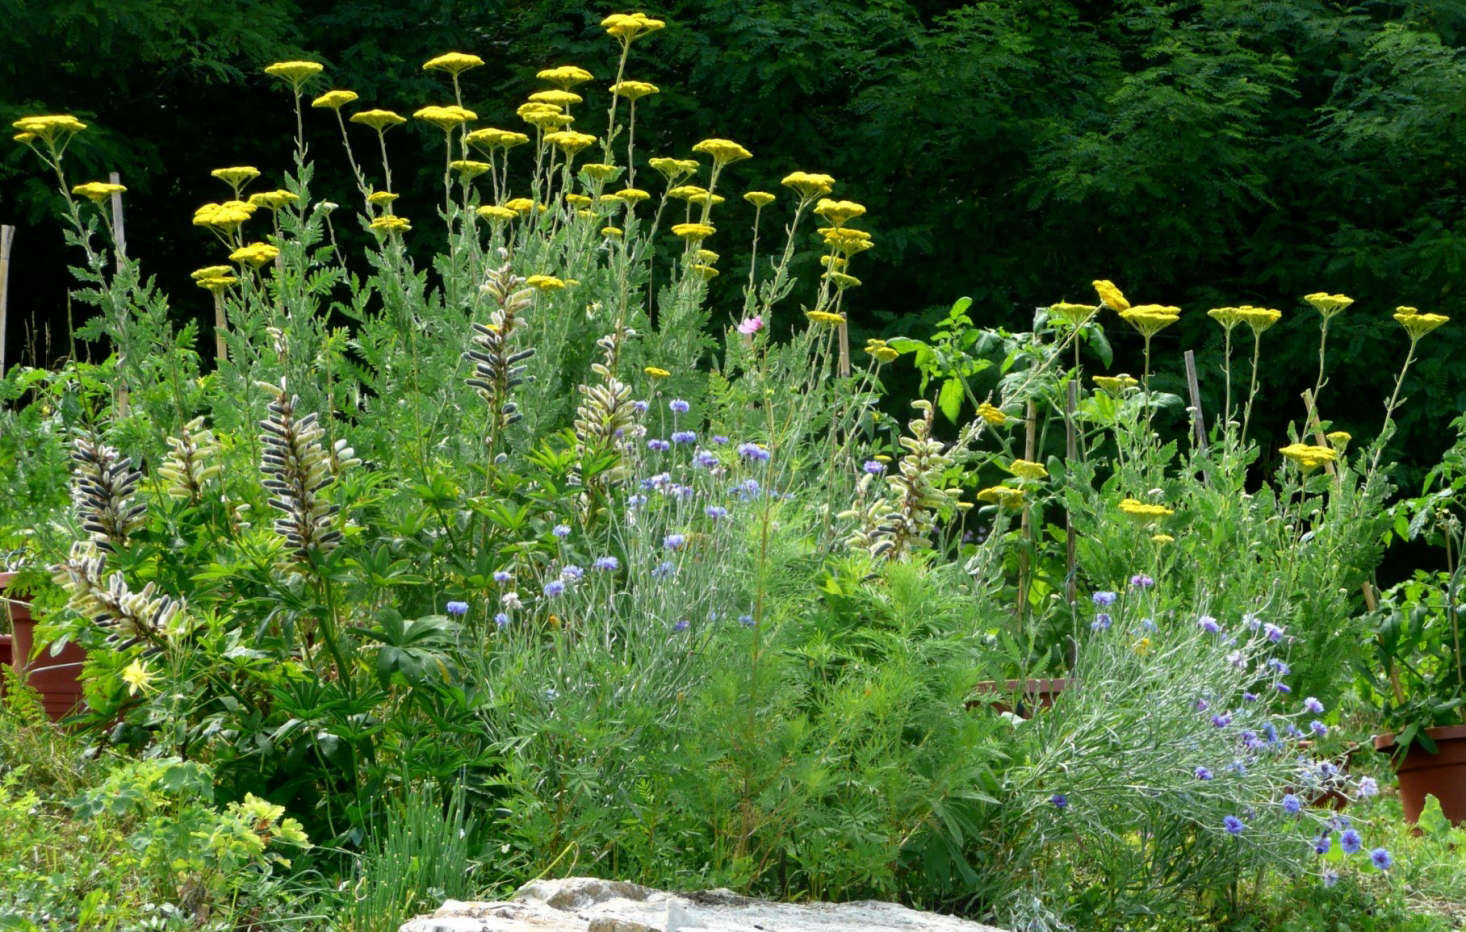 Yellow yarrow (Achillea) mingles well with other perennials in a flower bed. Photograph by Cristina Sanvito via Flickr.